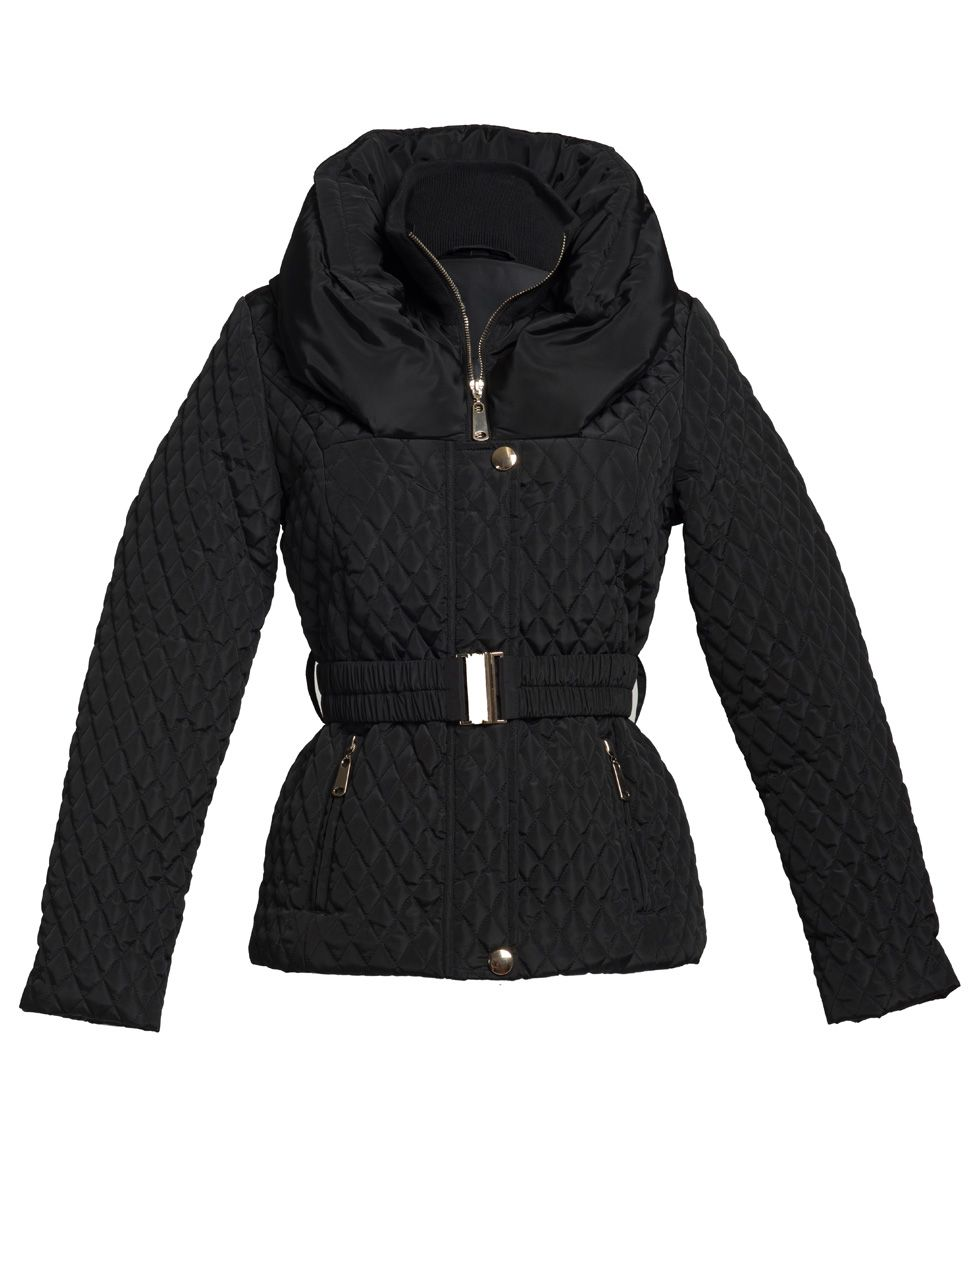 Hart black hooded jacket